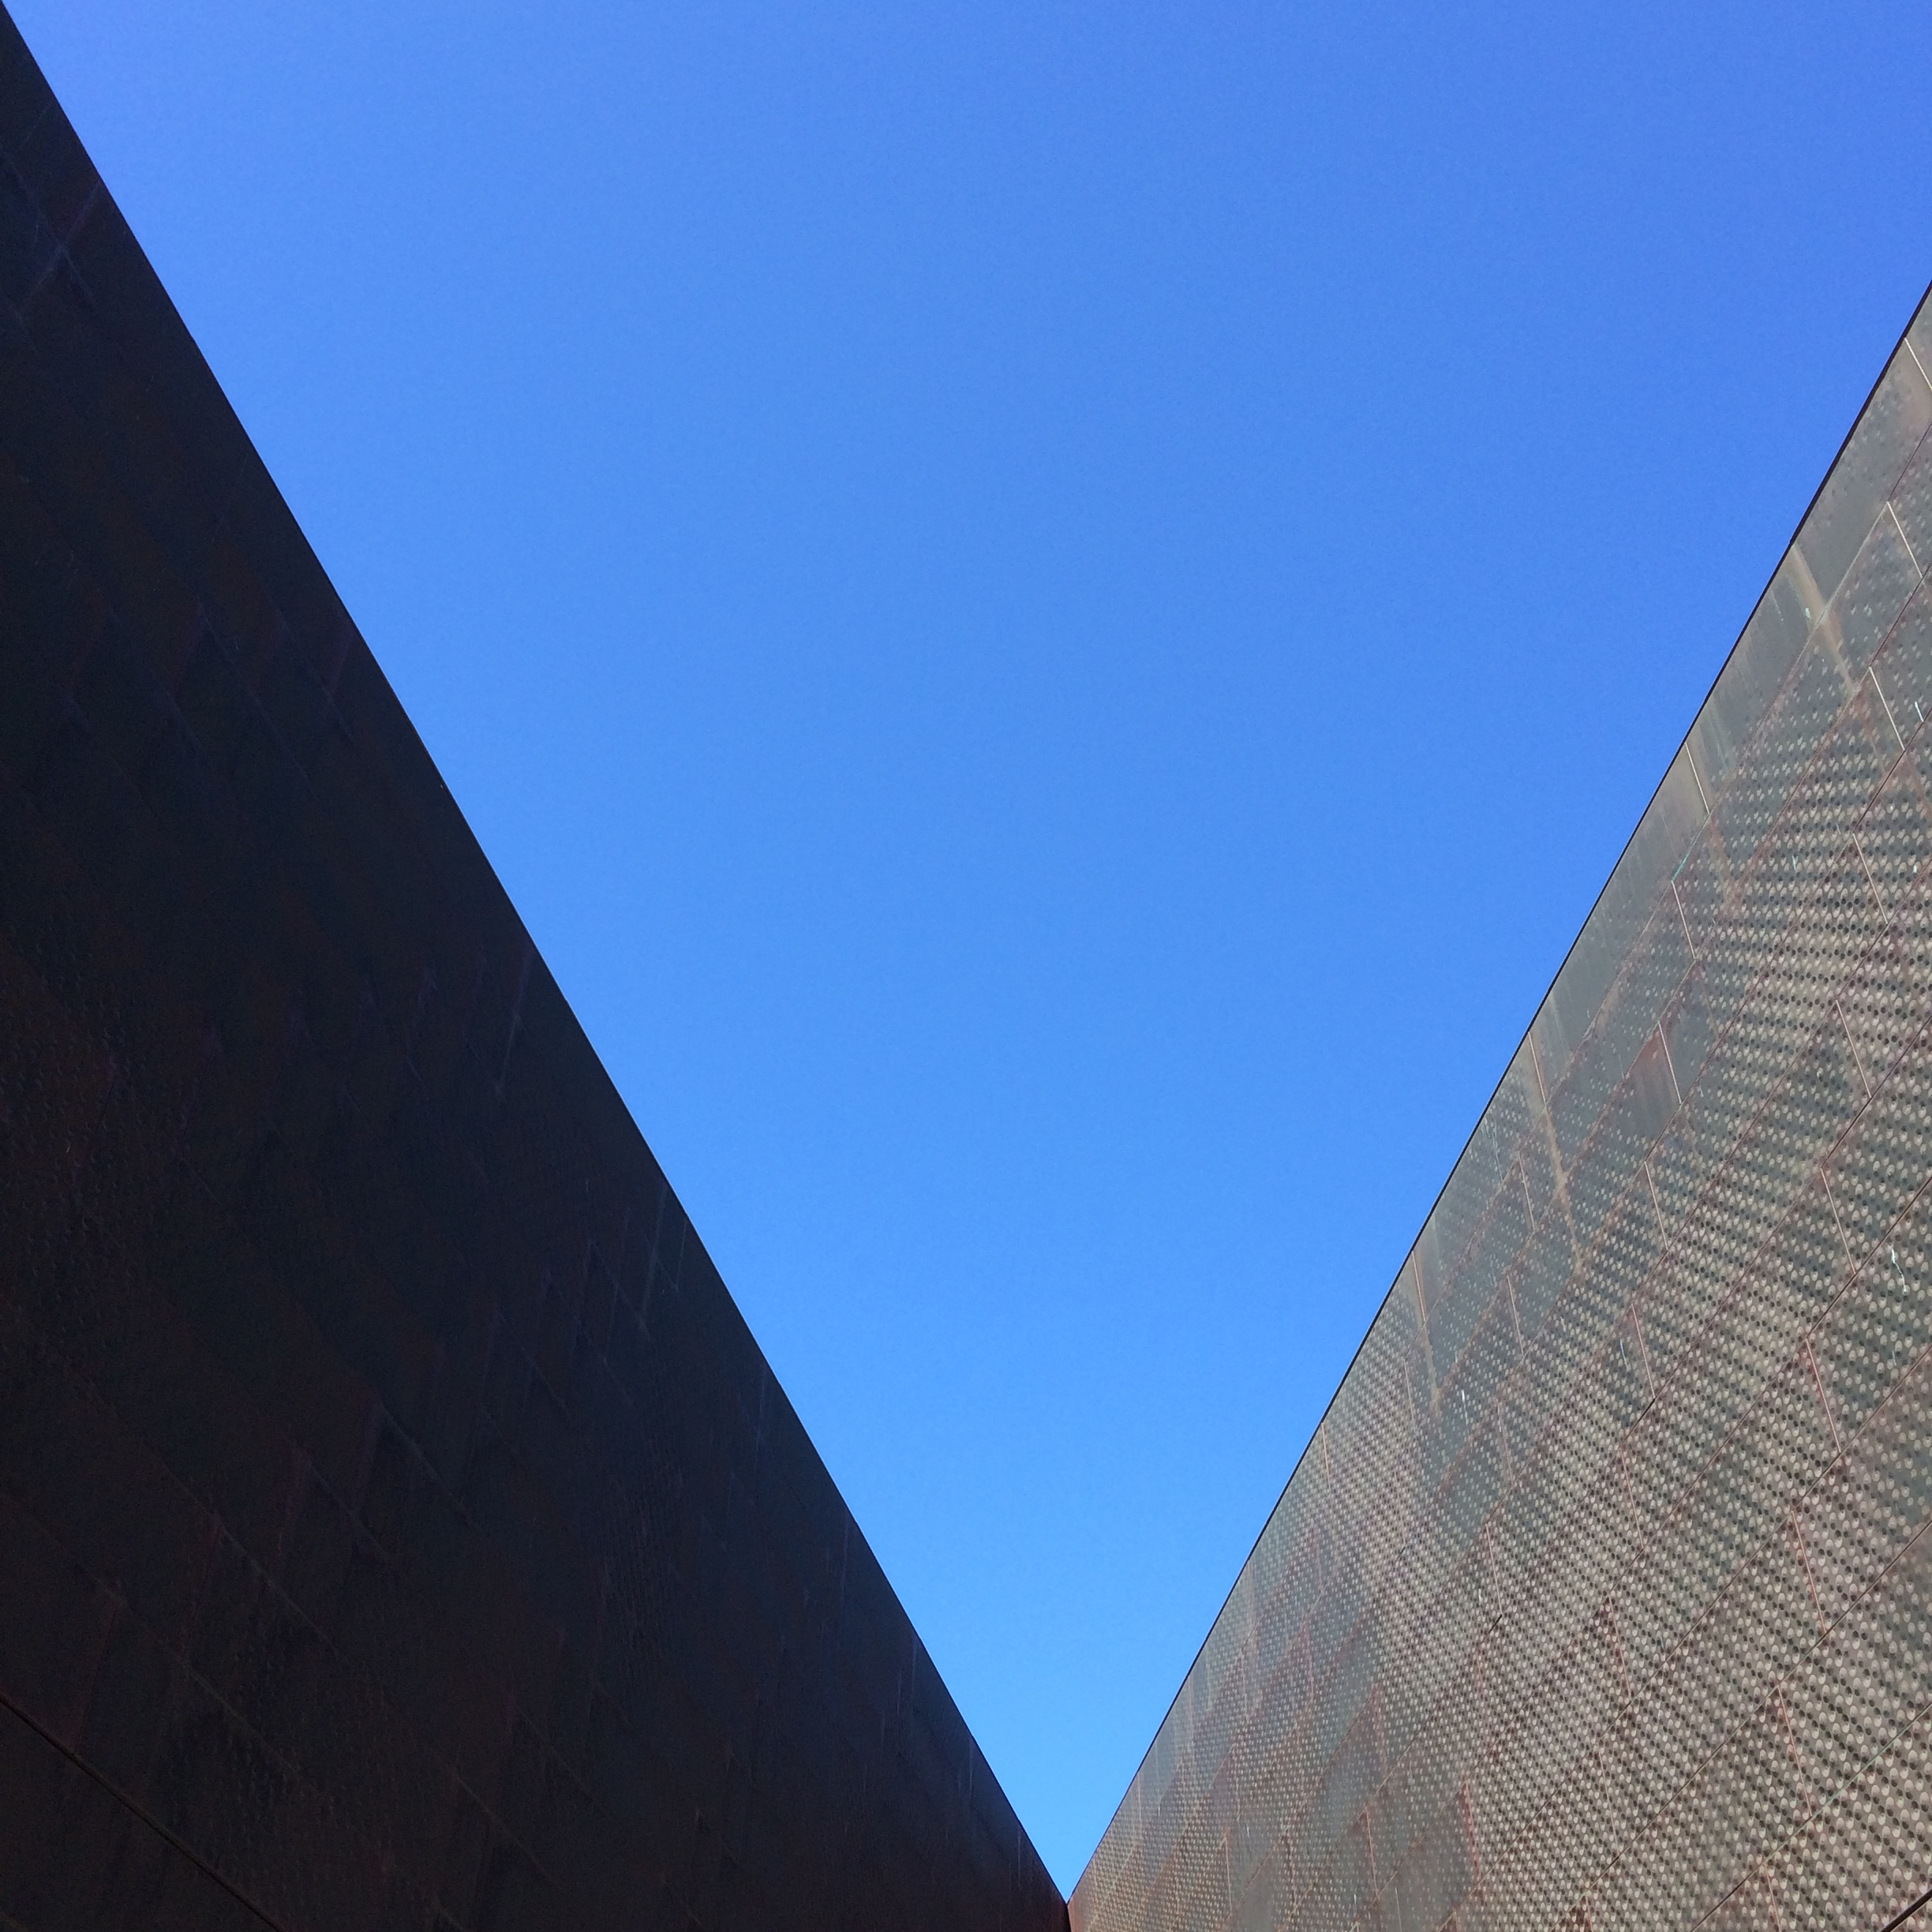 de Young Museum of Fine Arts in San Francisco, California - July 2016